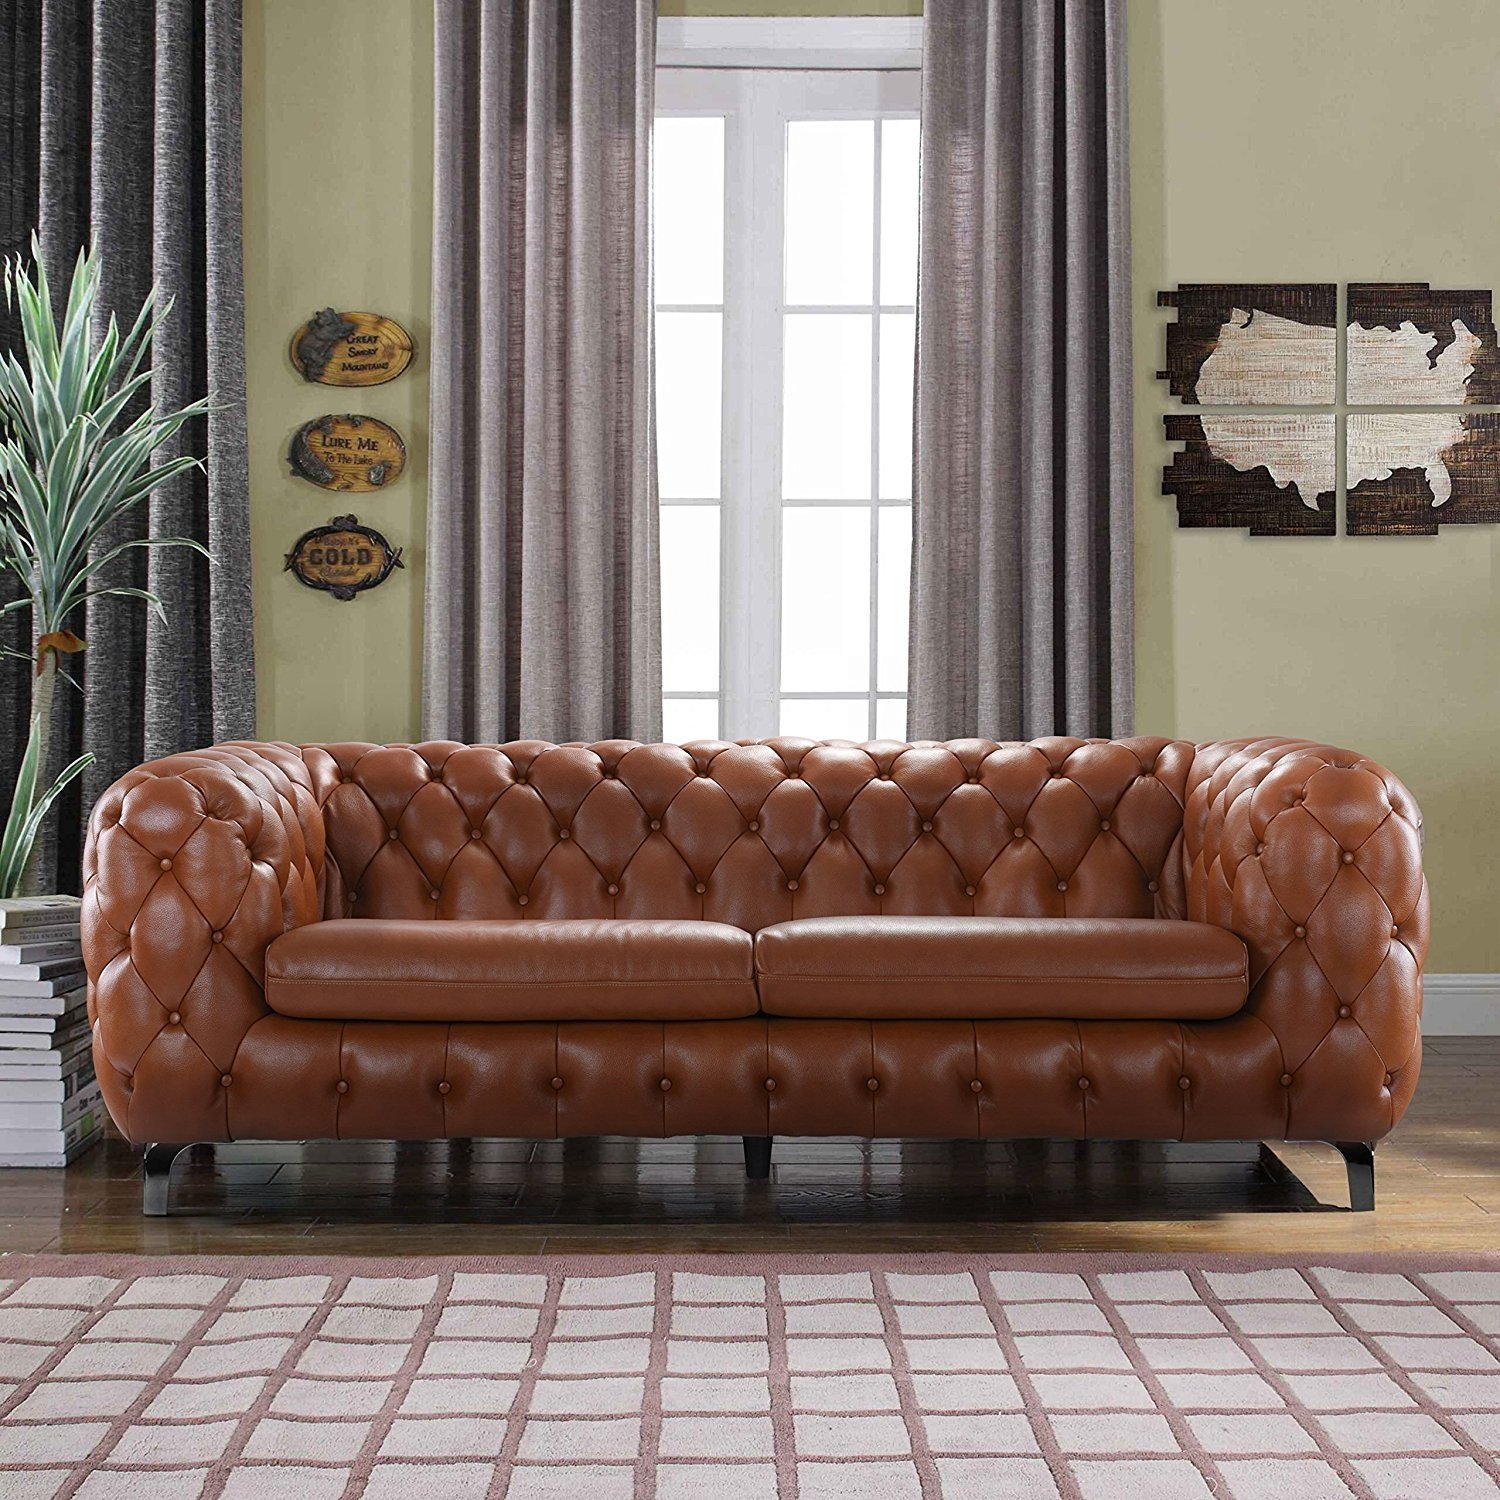 Details About Modern Club Frame Sofa Real Leather Match Tufted Chesterfield Couch Camel